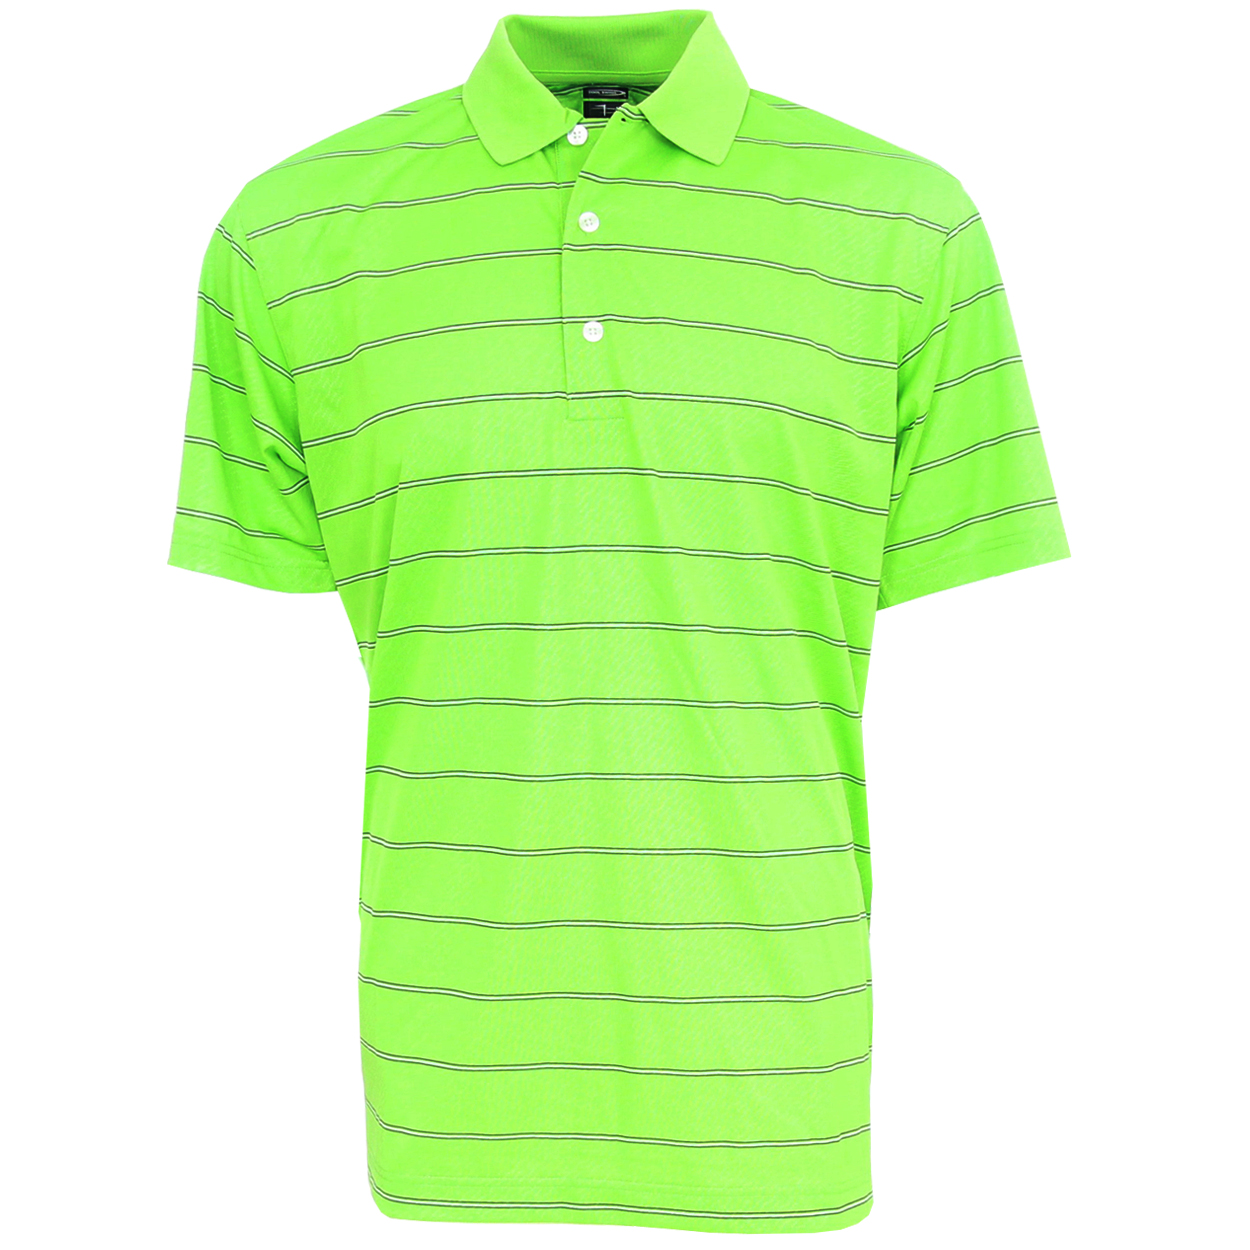 Page Tuttle Cool Swing Men 39 S Striped Polo Golf Shirt Brand